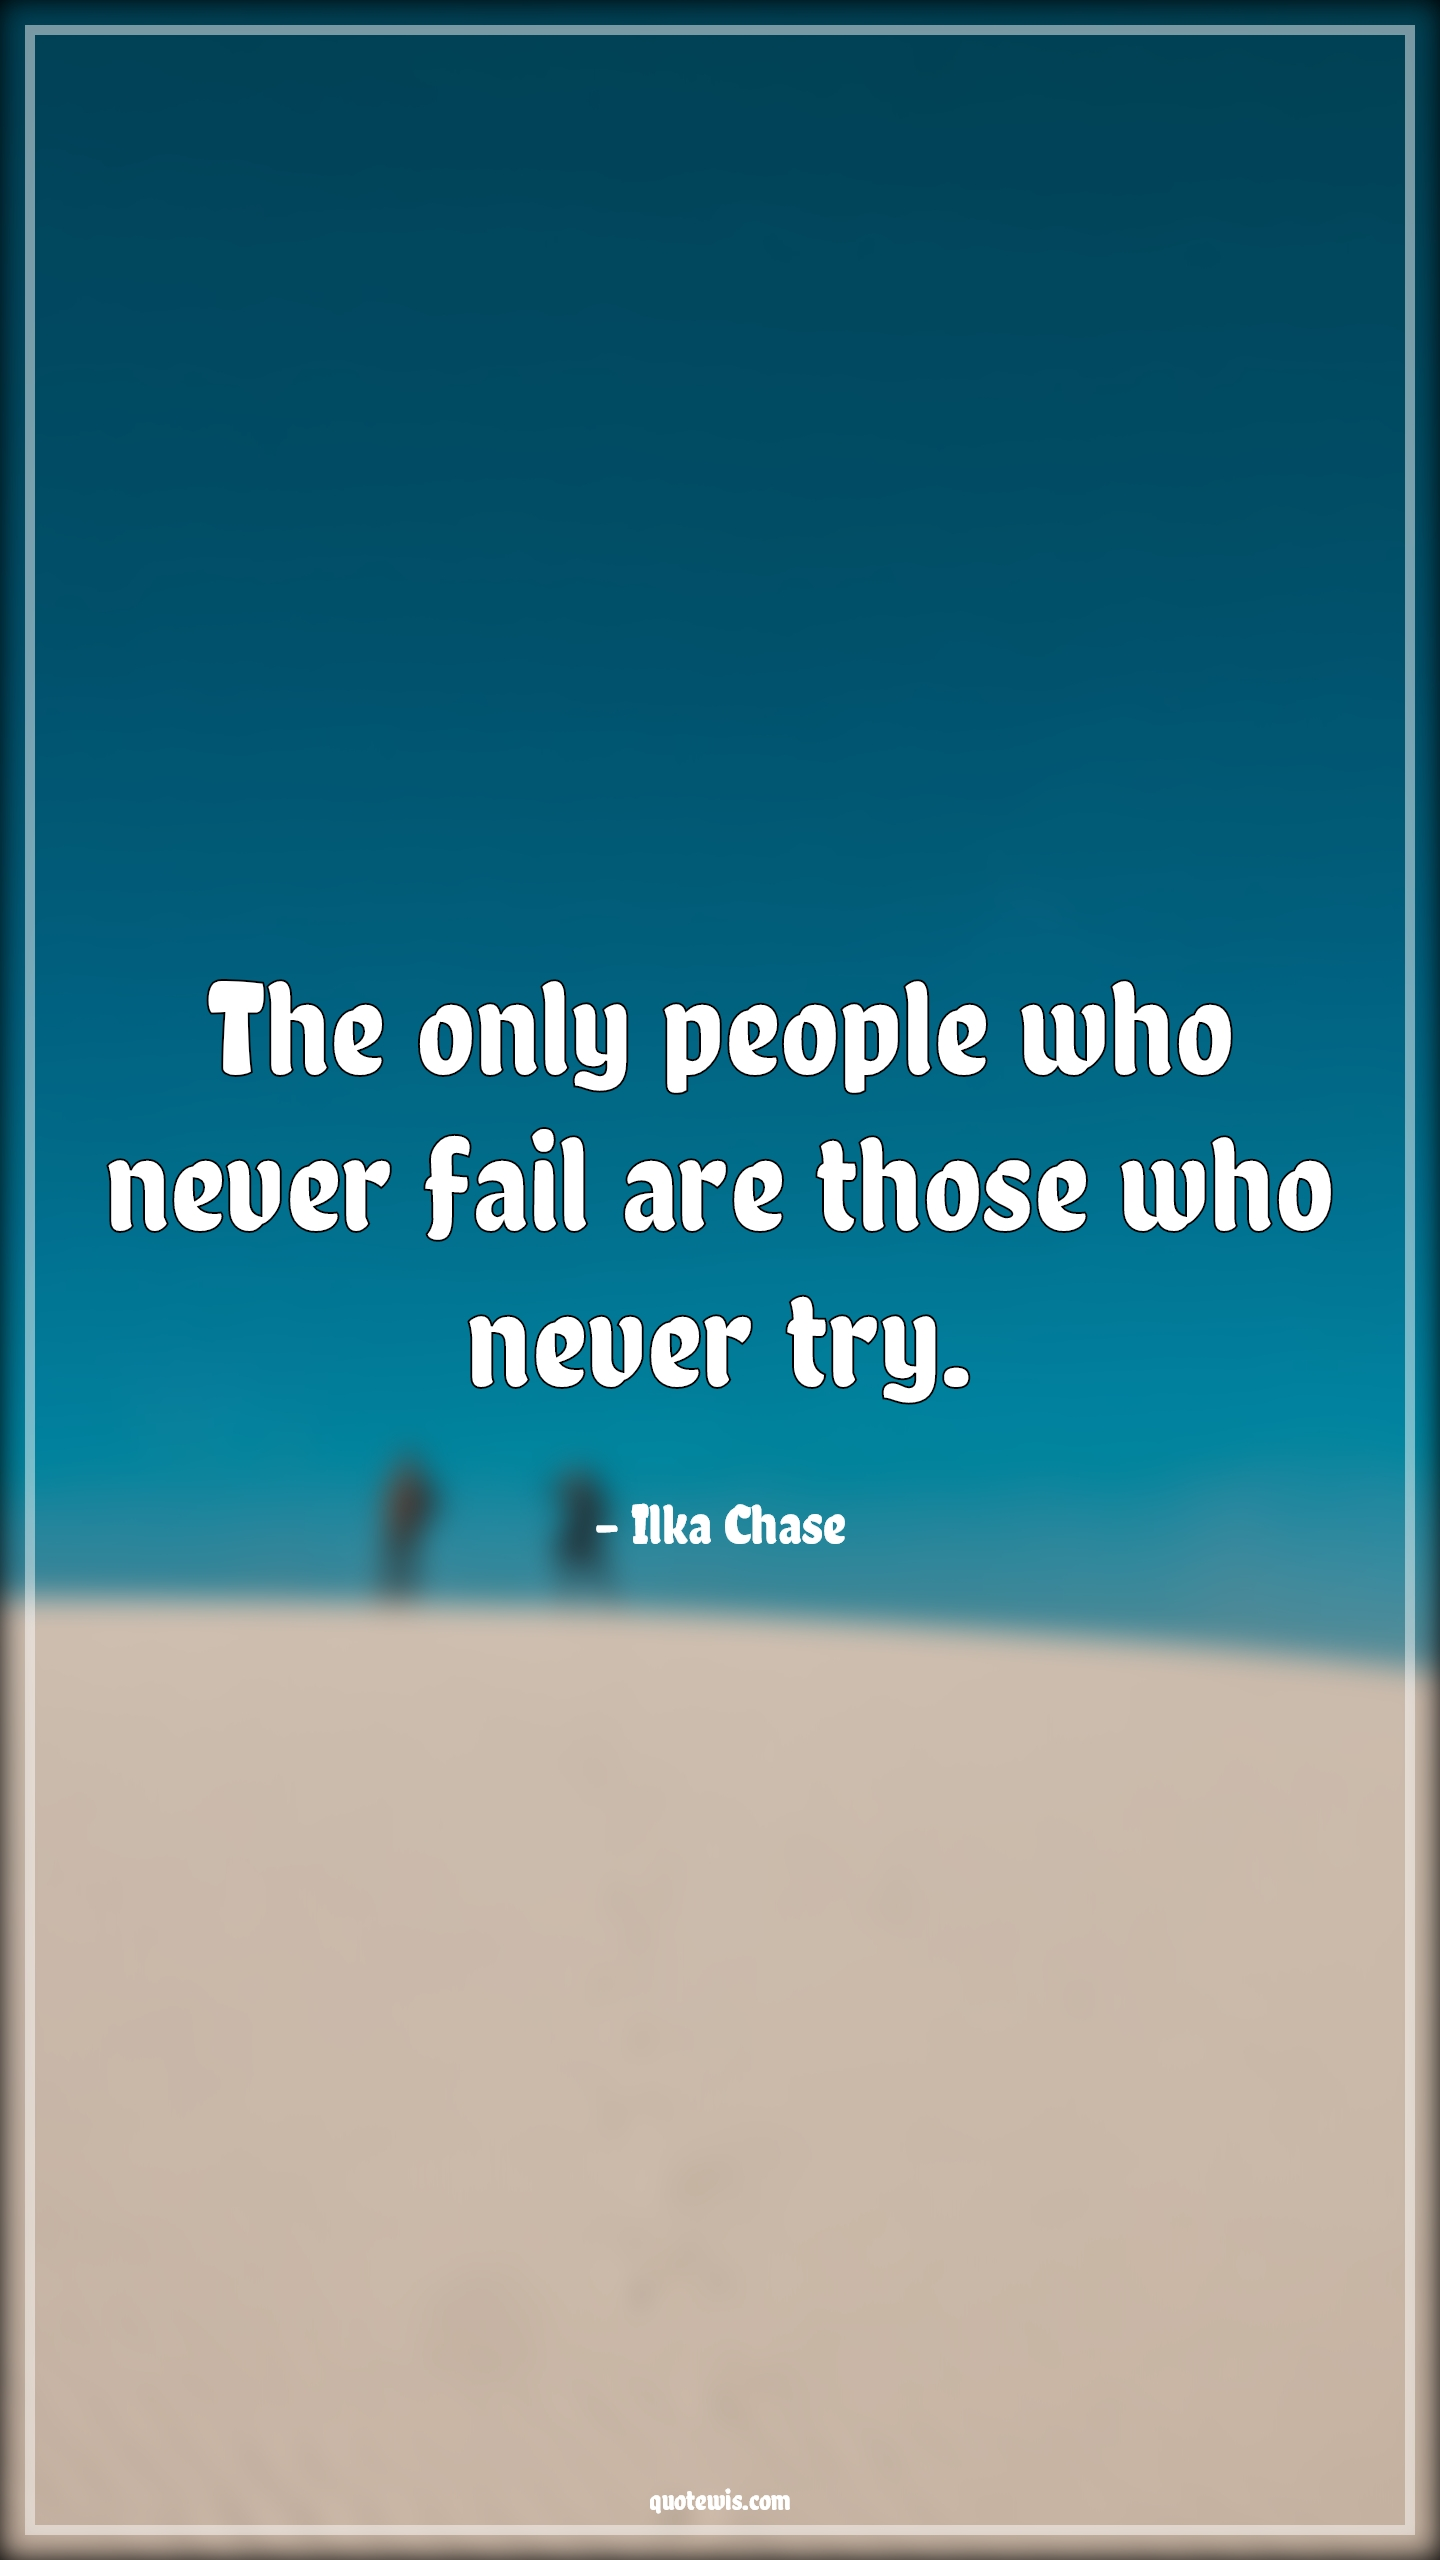 The only people who never fail are those who never try.